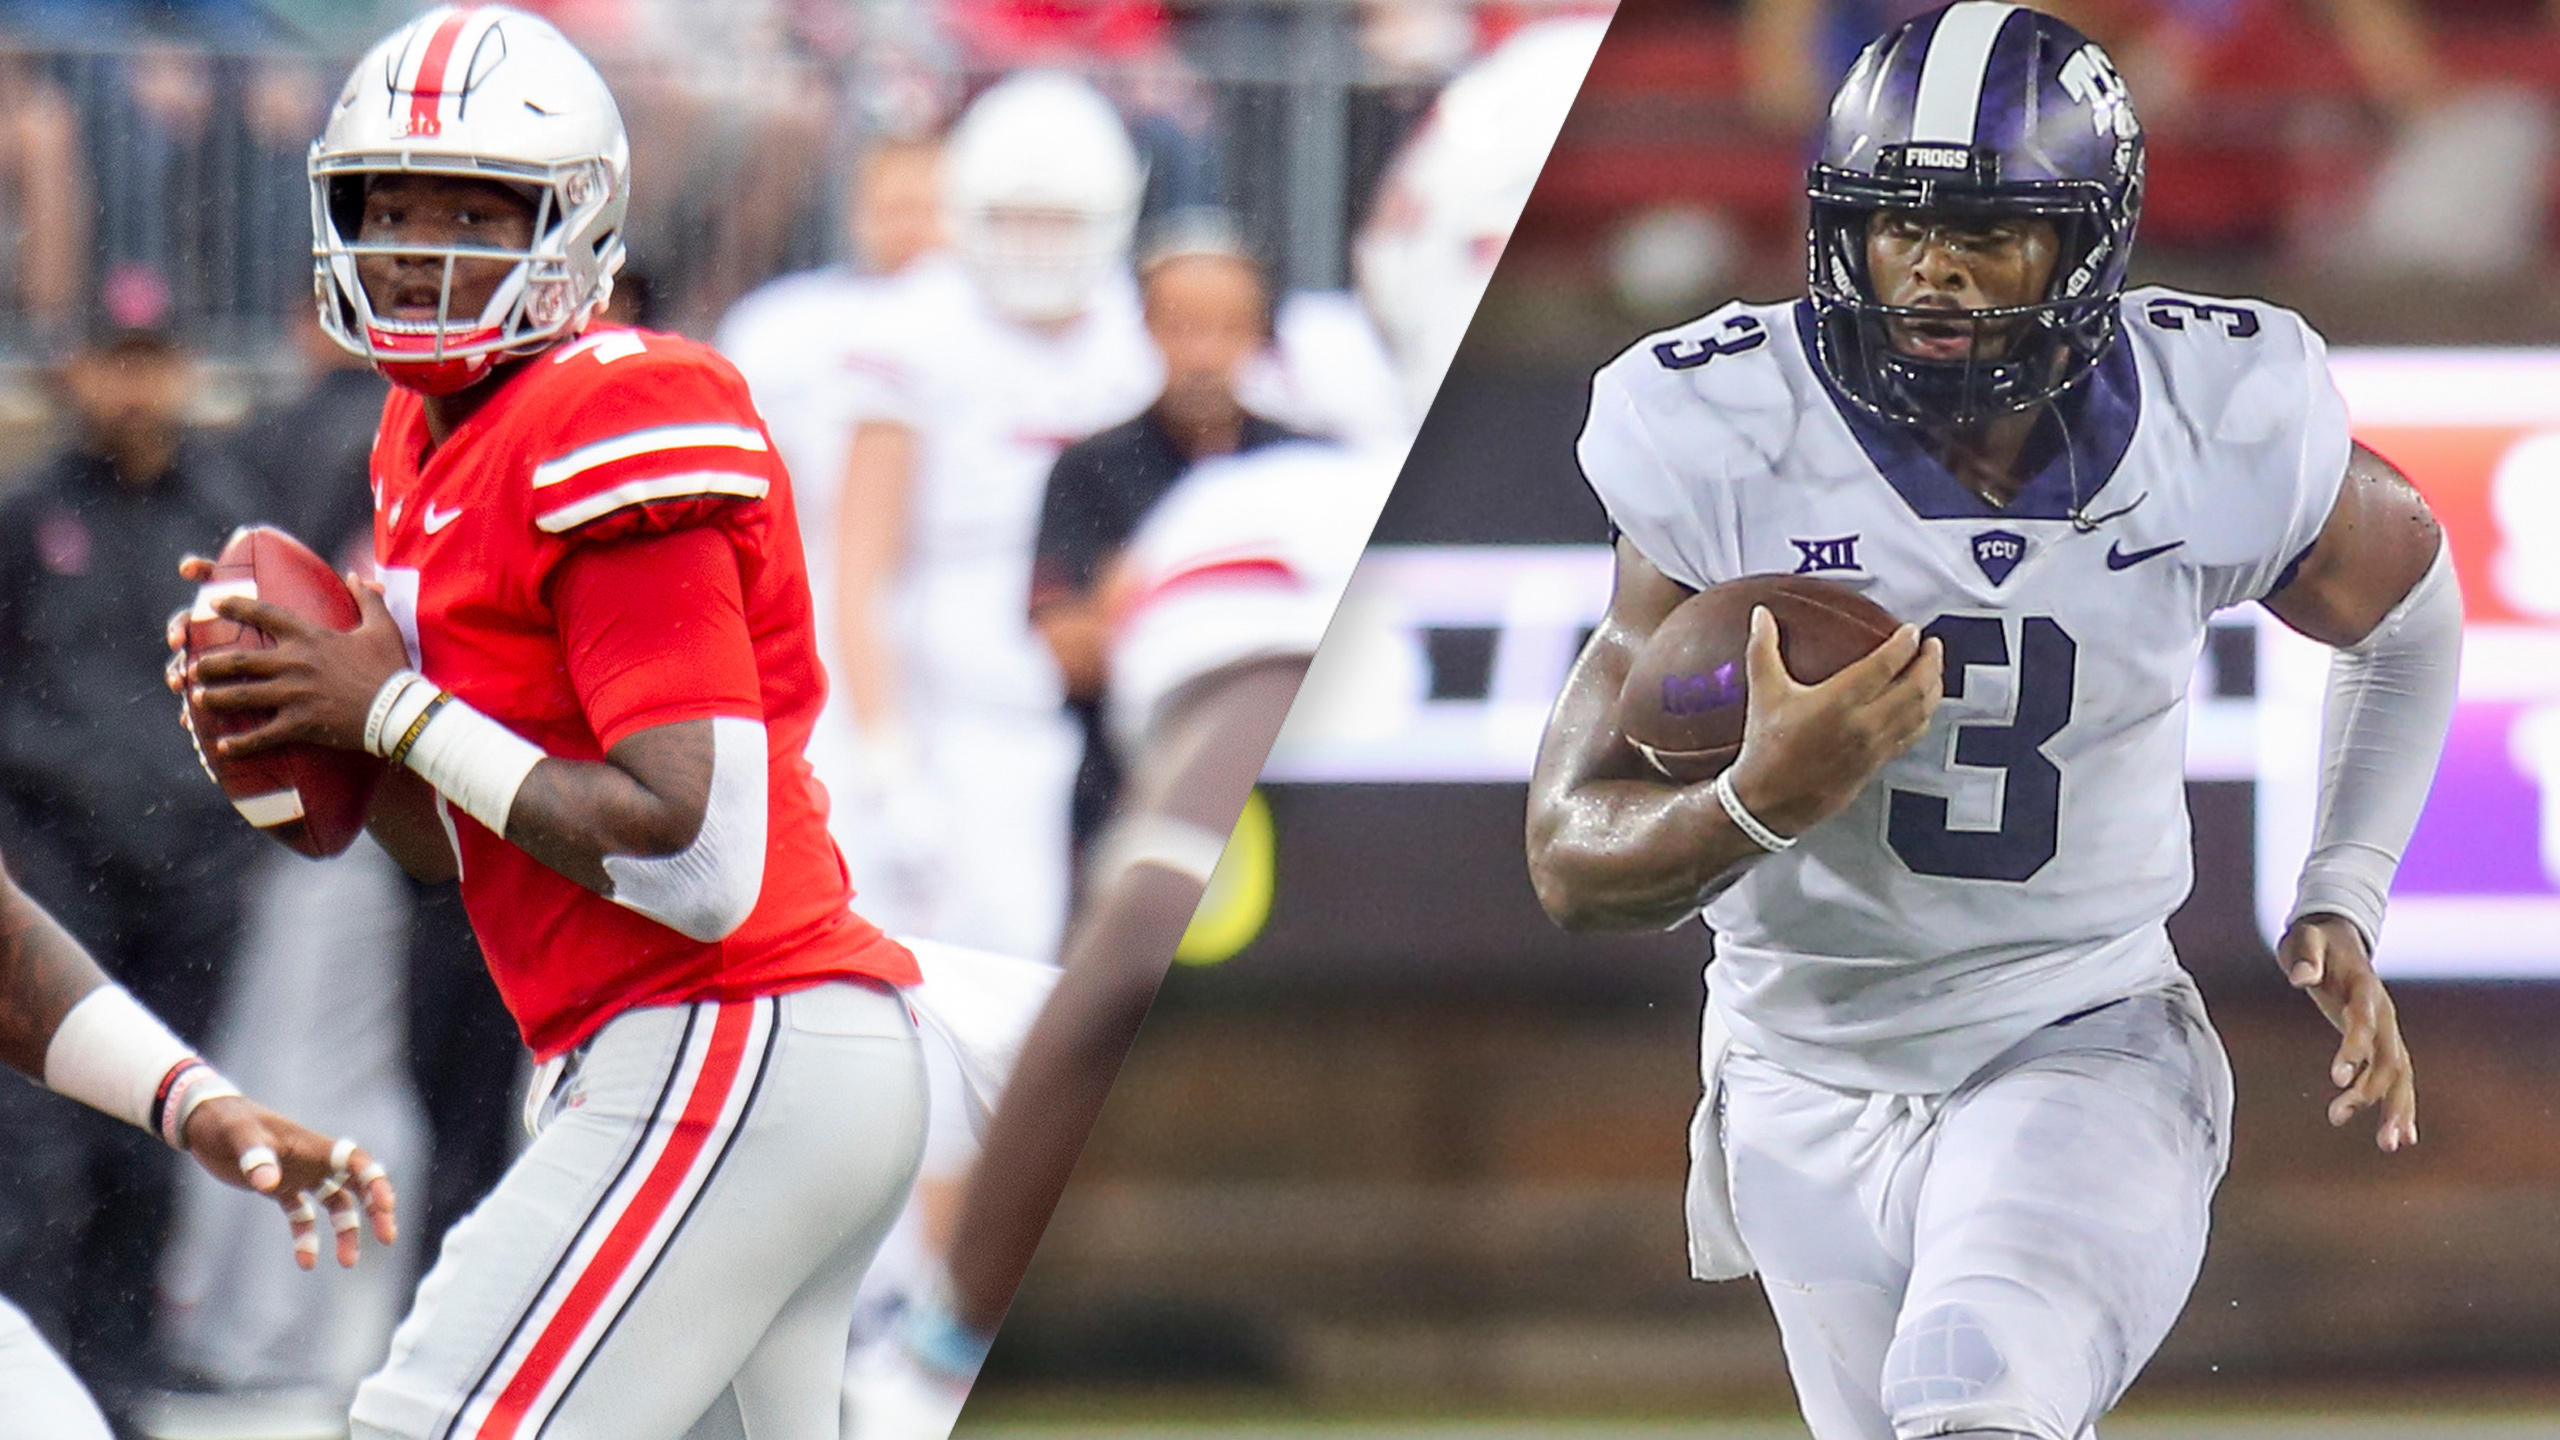 #4 Ohio State vs. #15 TCU (Football)